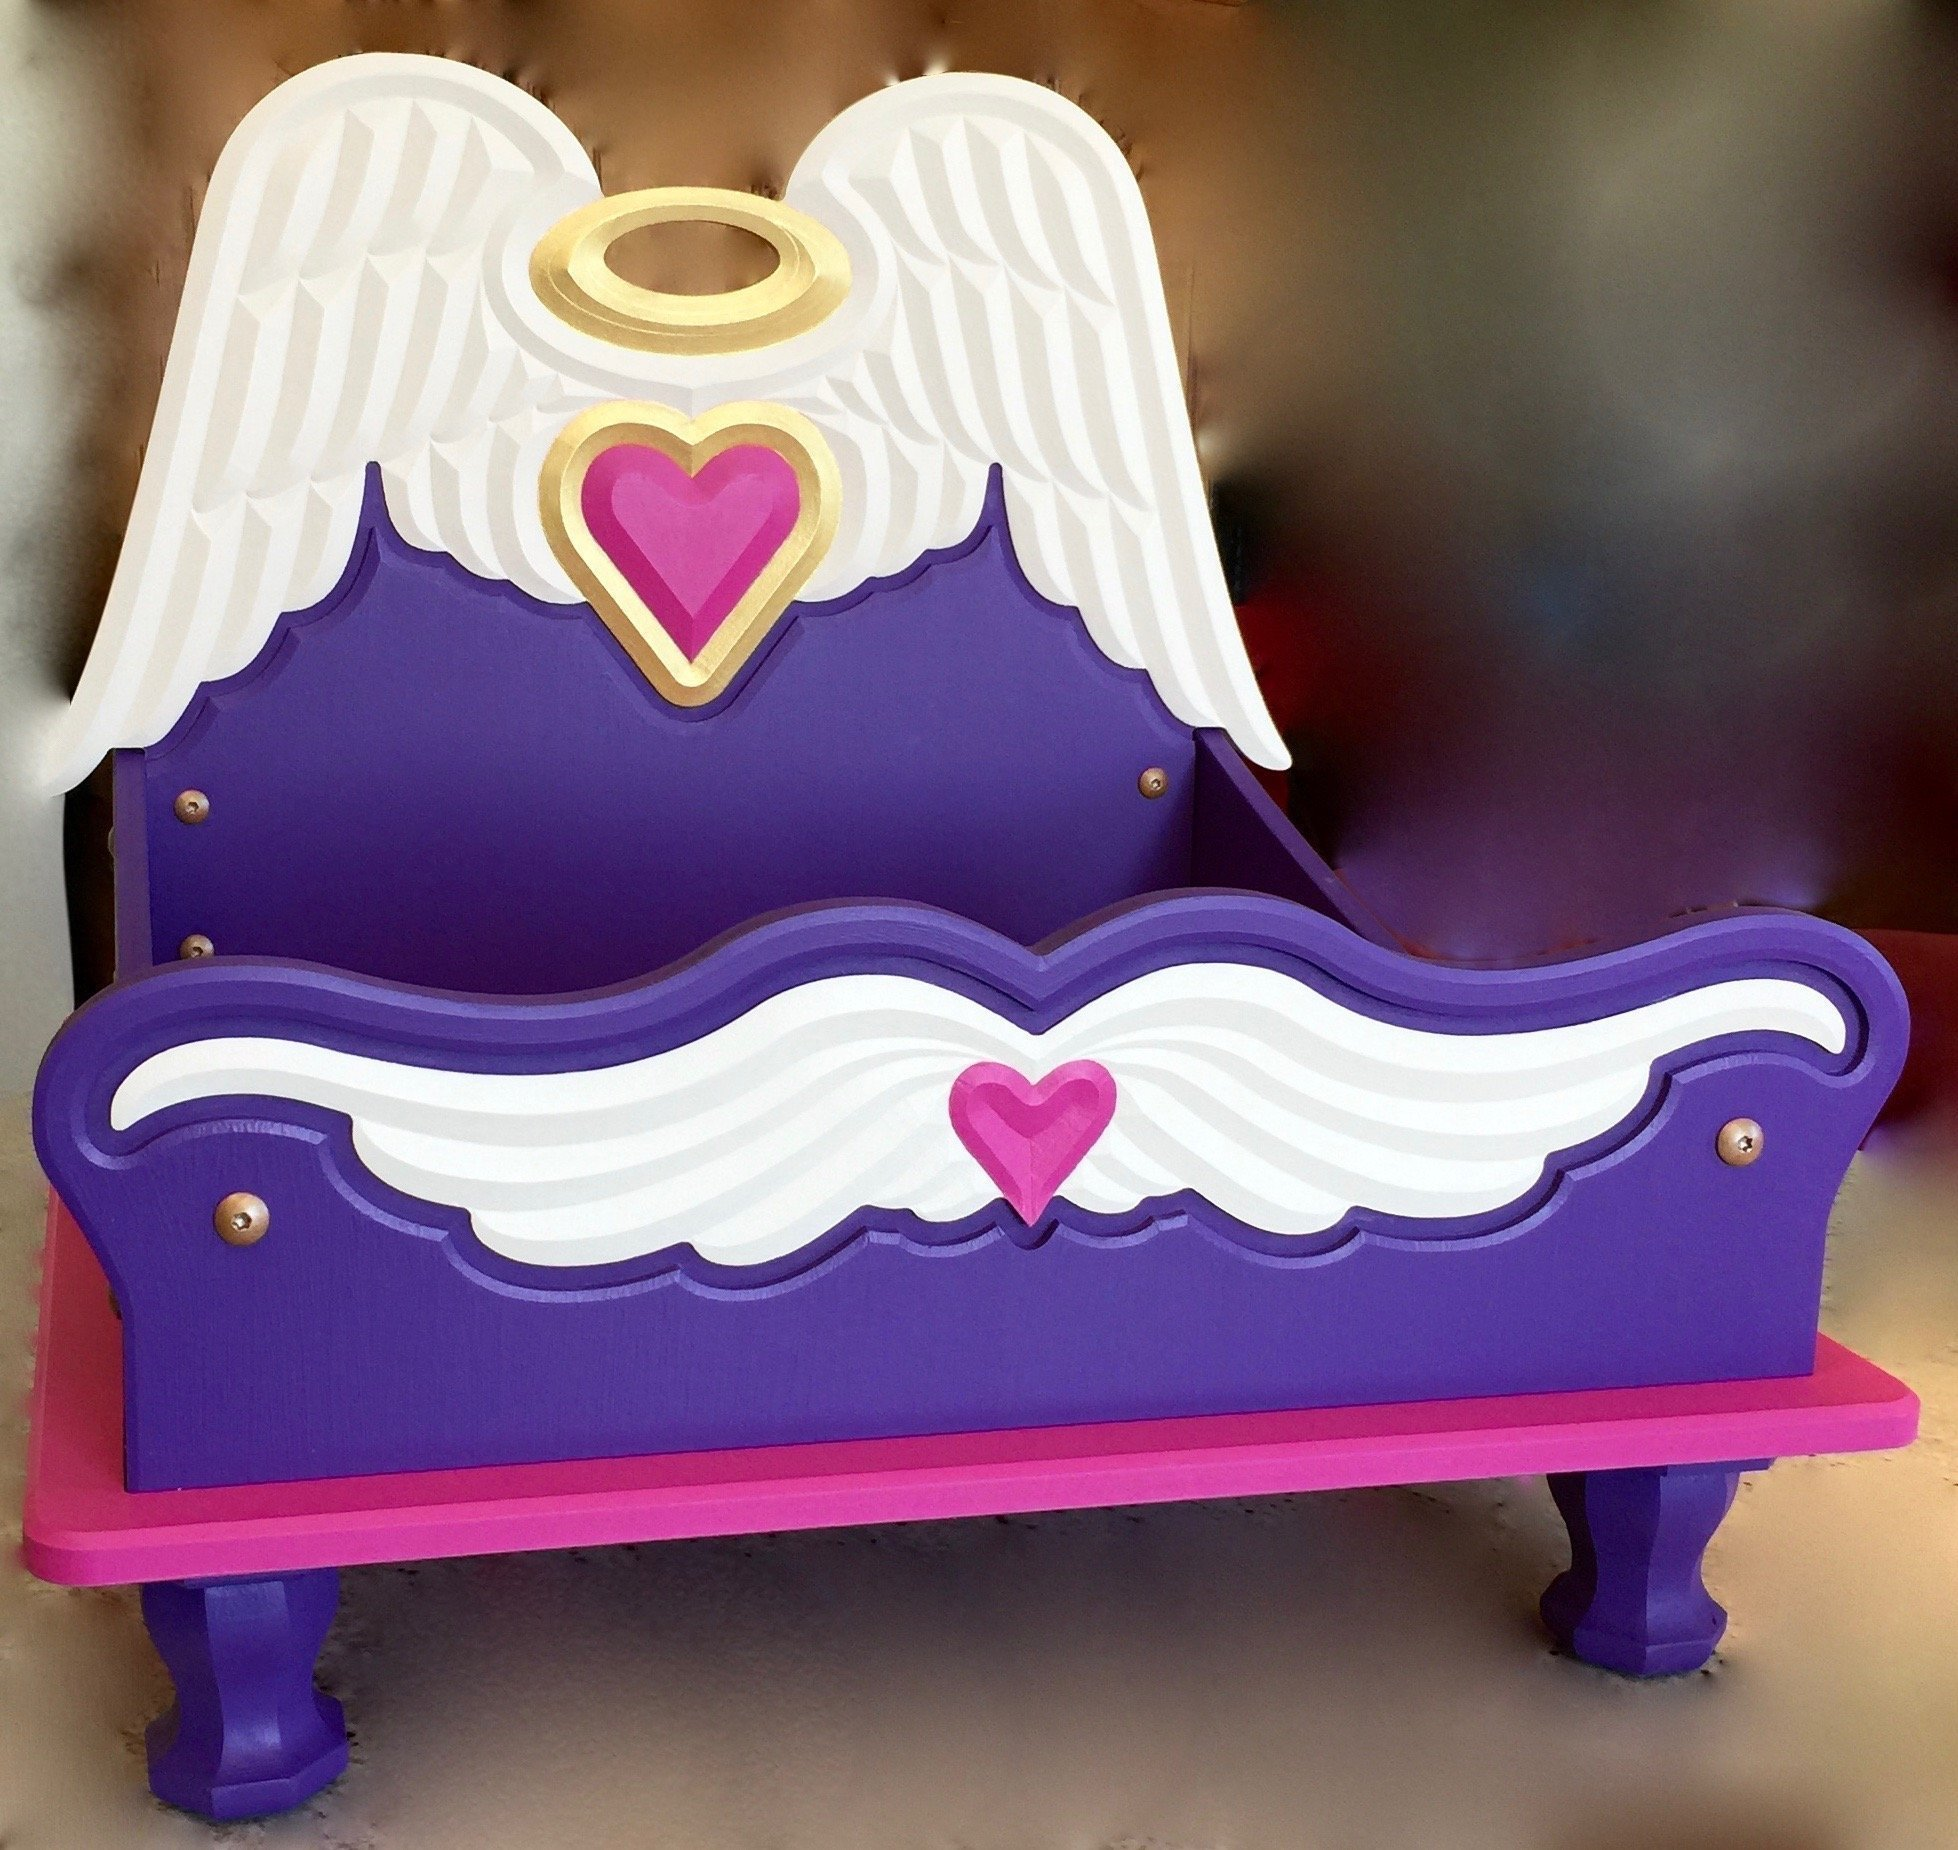 Boutique Mini Bed with Carved Detailing (Purple with Hot Pink Accents)